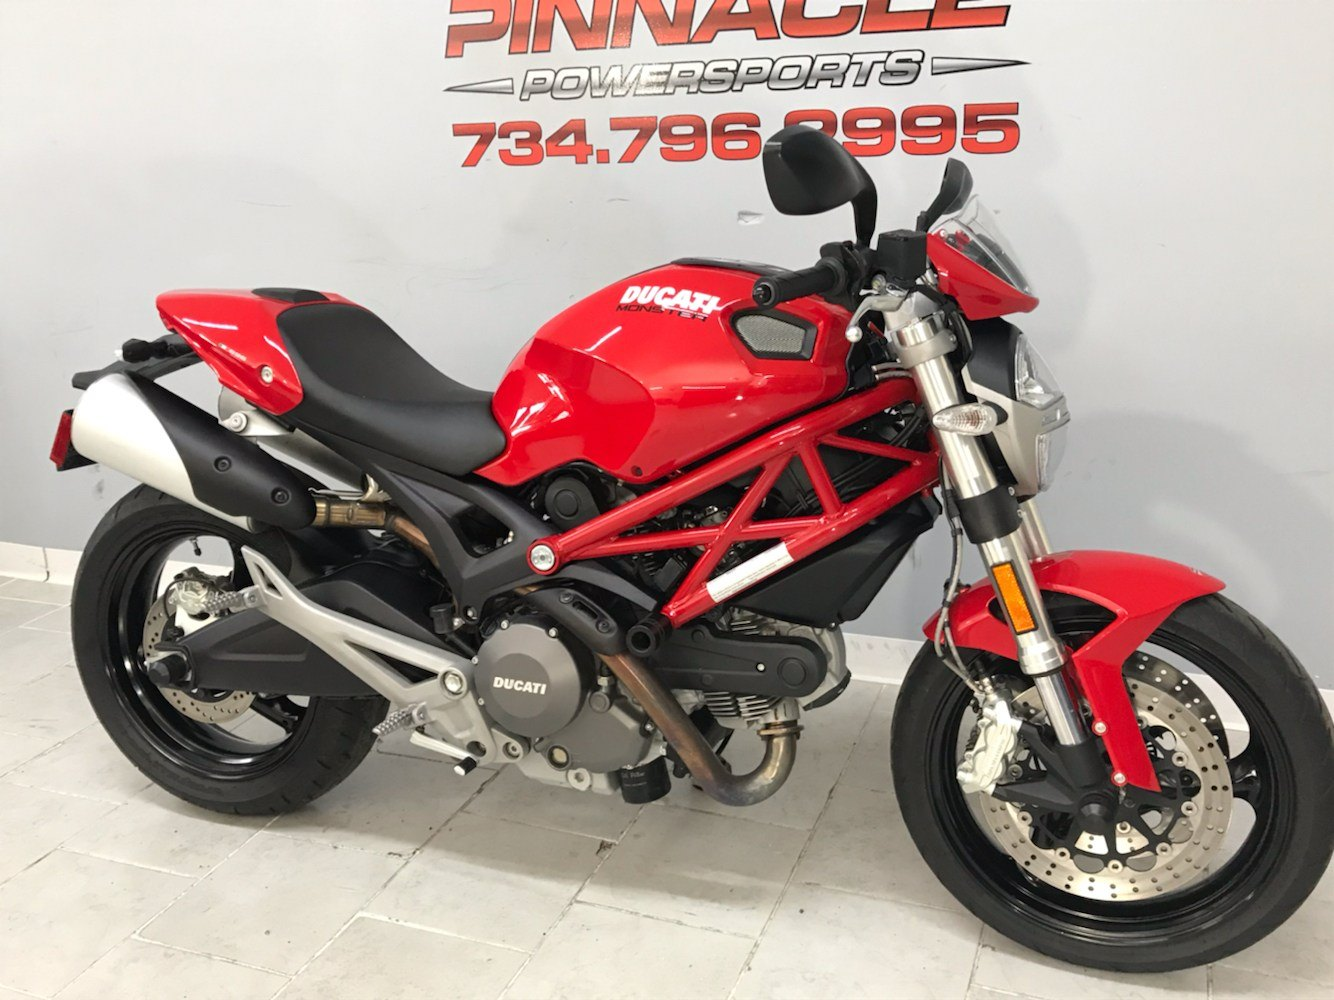 2012 Ducati Monster 696 in Belleville, Michigan - Photo 2